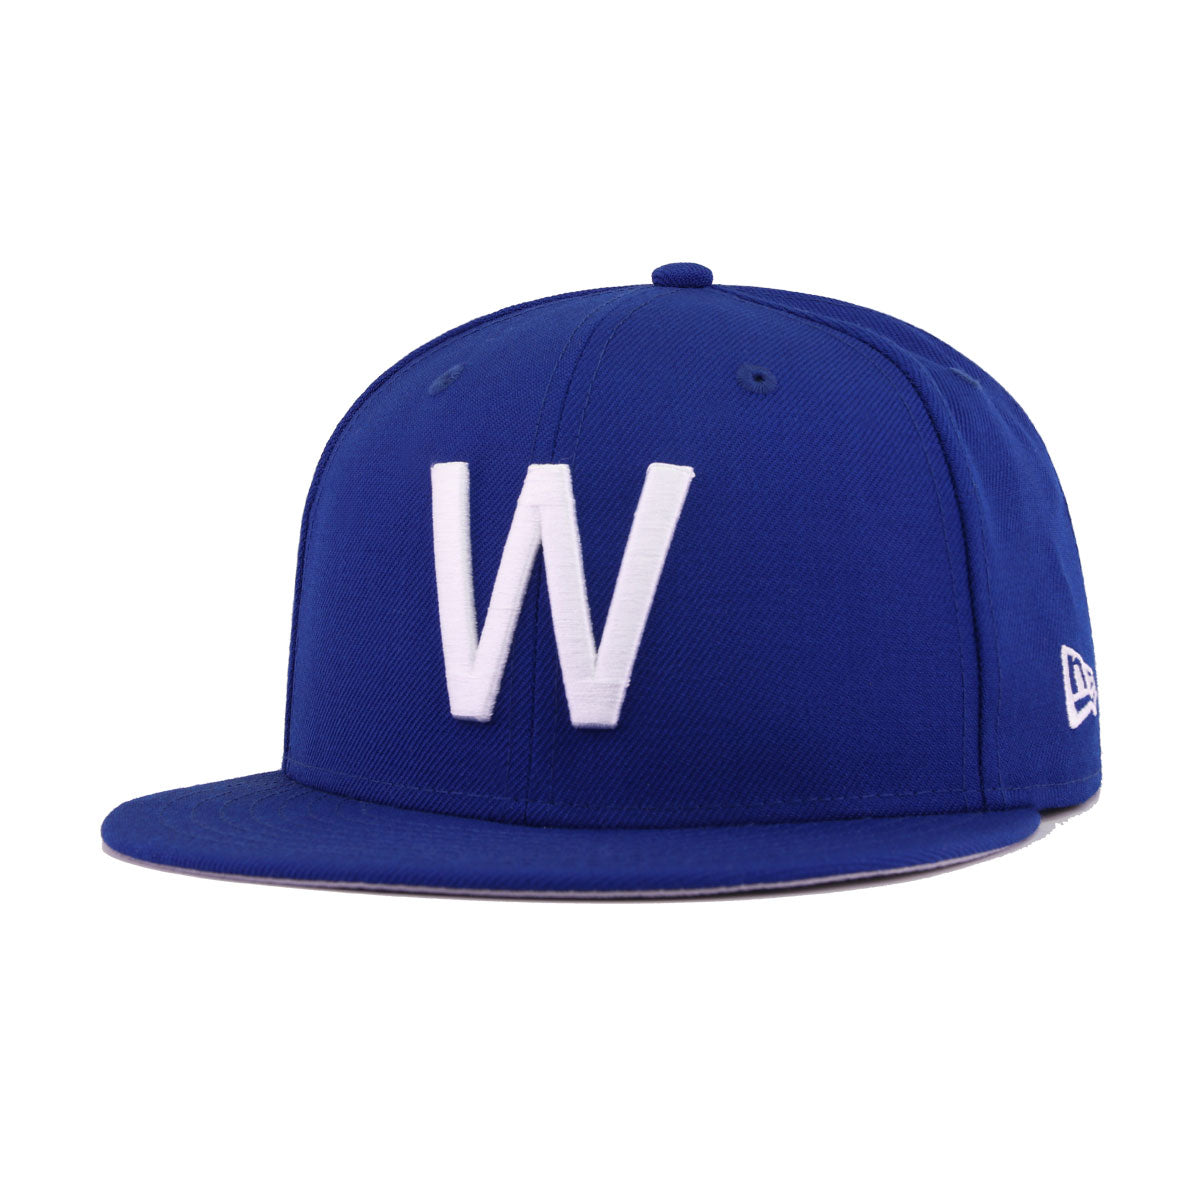 Washington Senators Light Royal Blue New Era 59Fifty Fitted